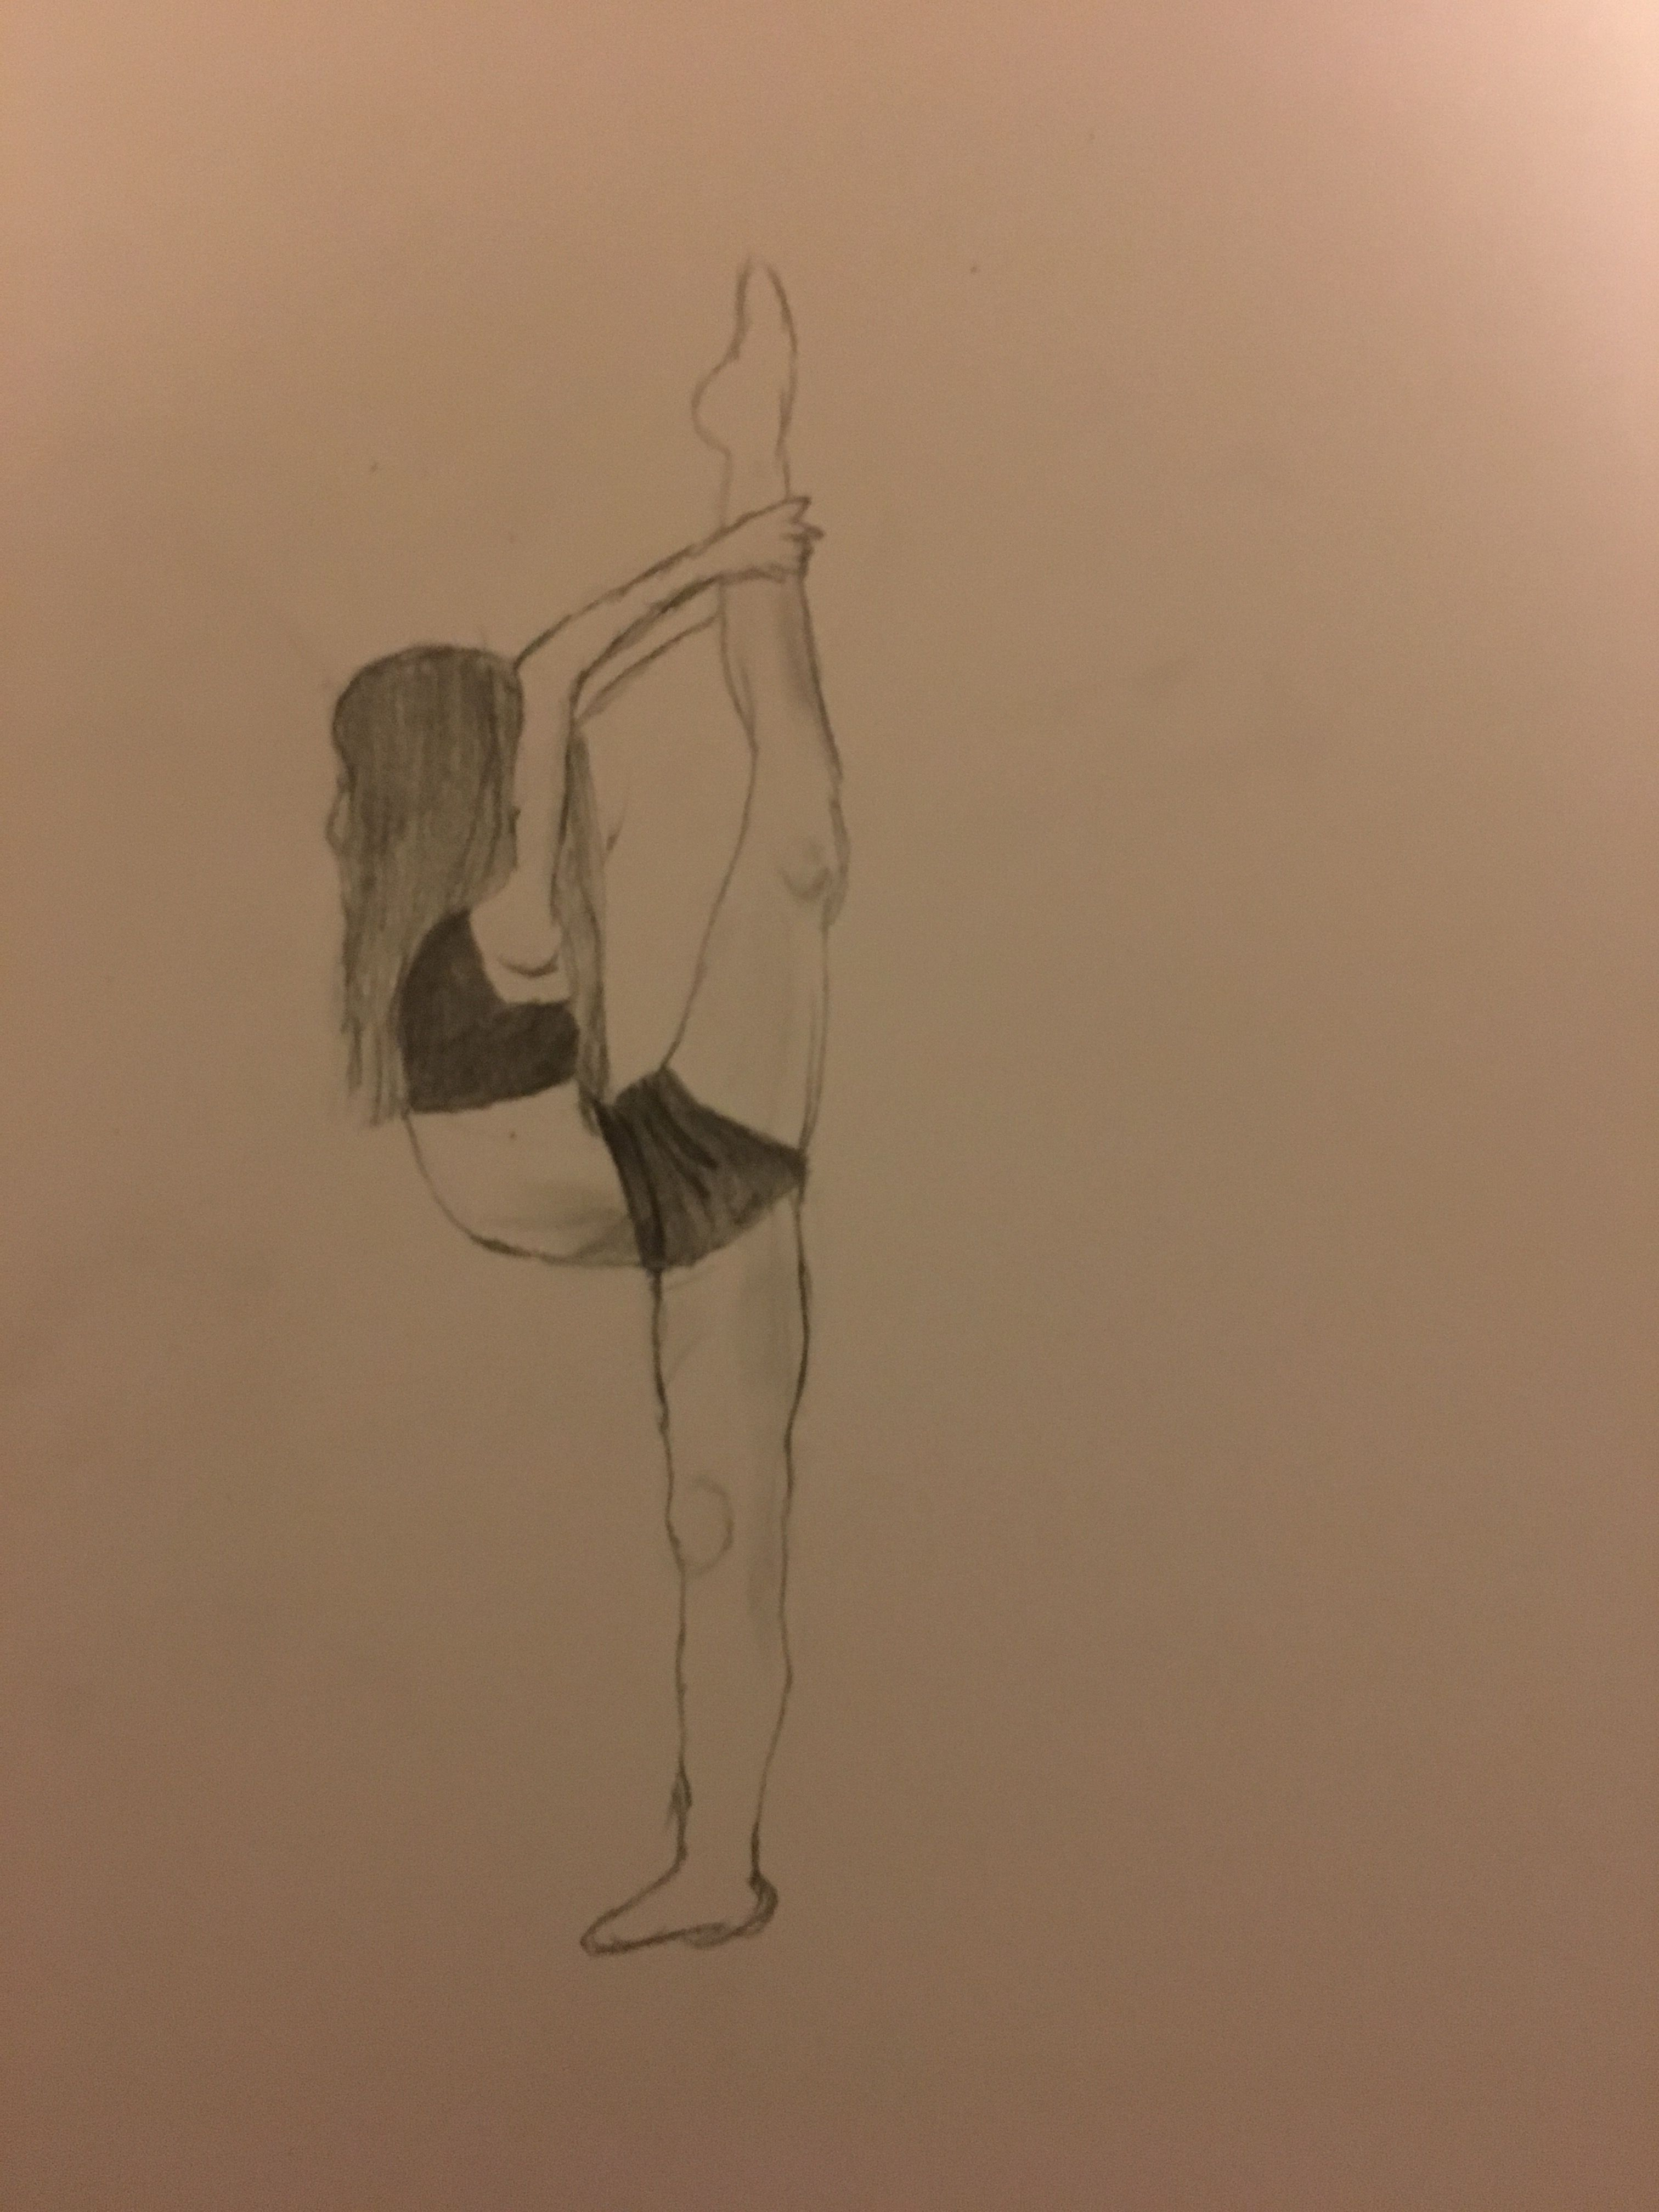 Straight Scorpion Gymnastics Flexibility Sketch Dancing Drawings Drawings Of Friends Art Drawings Sketches